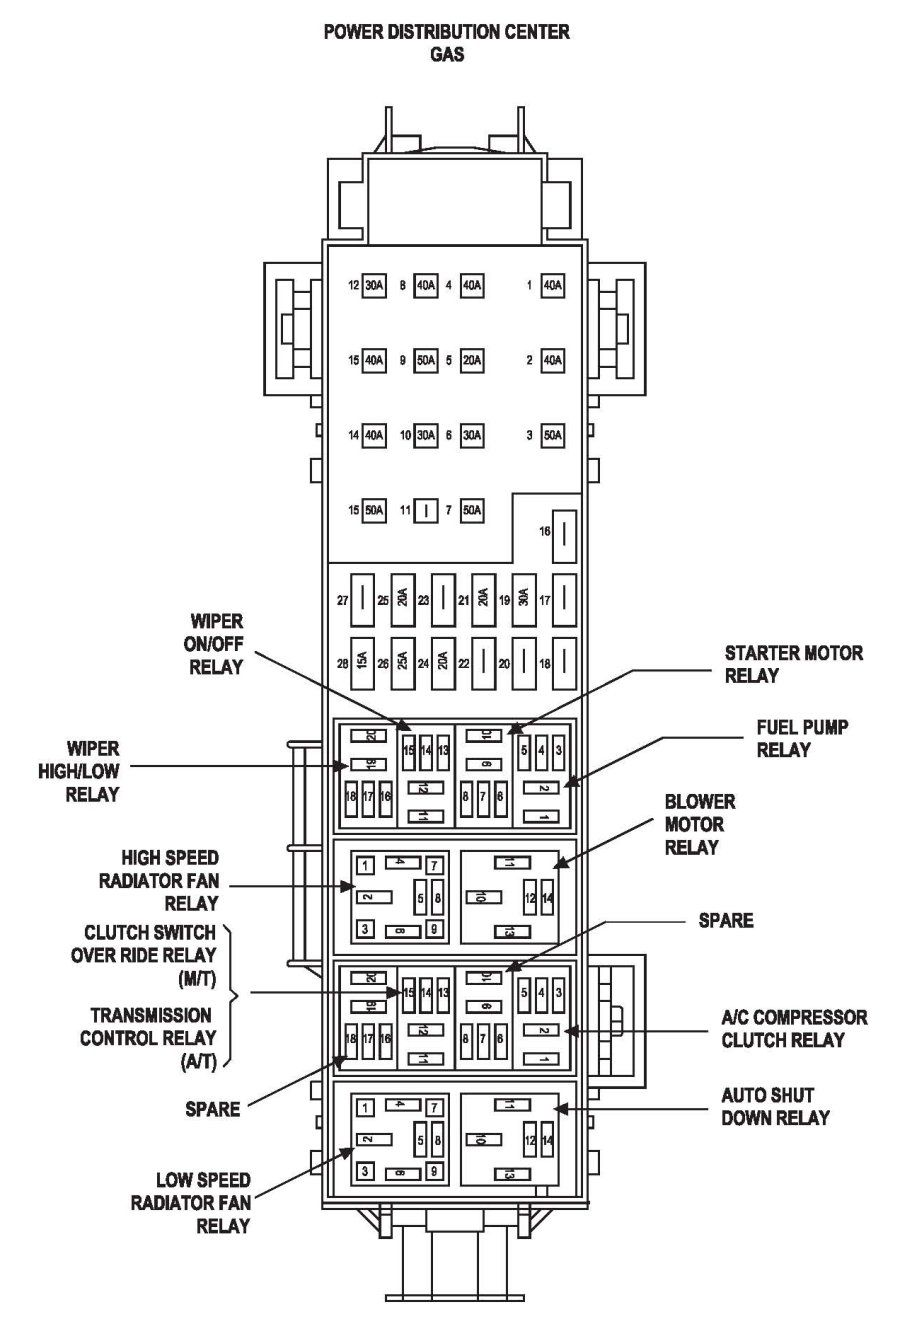 hight resolution of 2001 pt cruiser fuse box diagram wiring diagram 2007